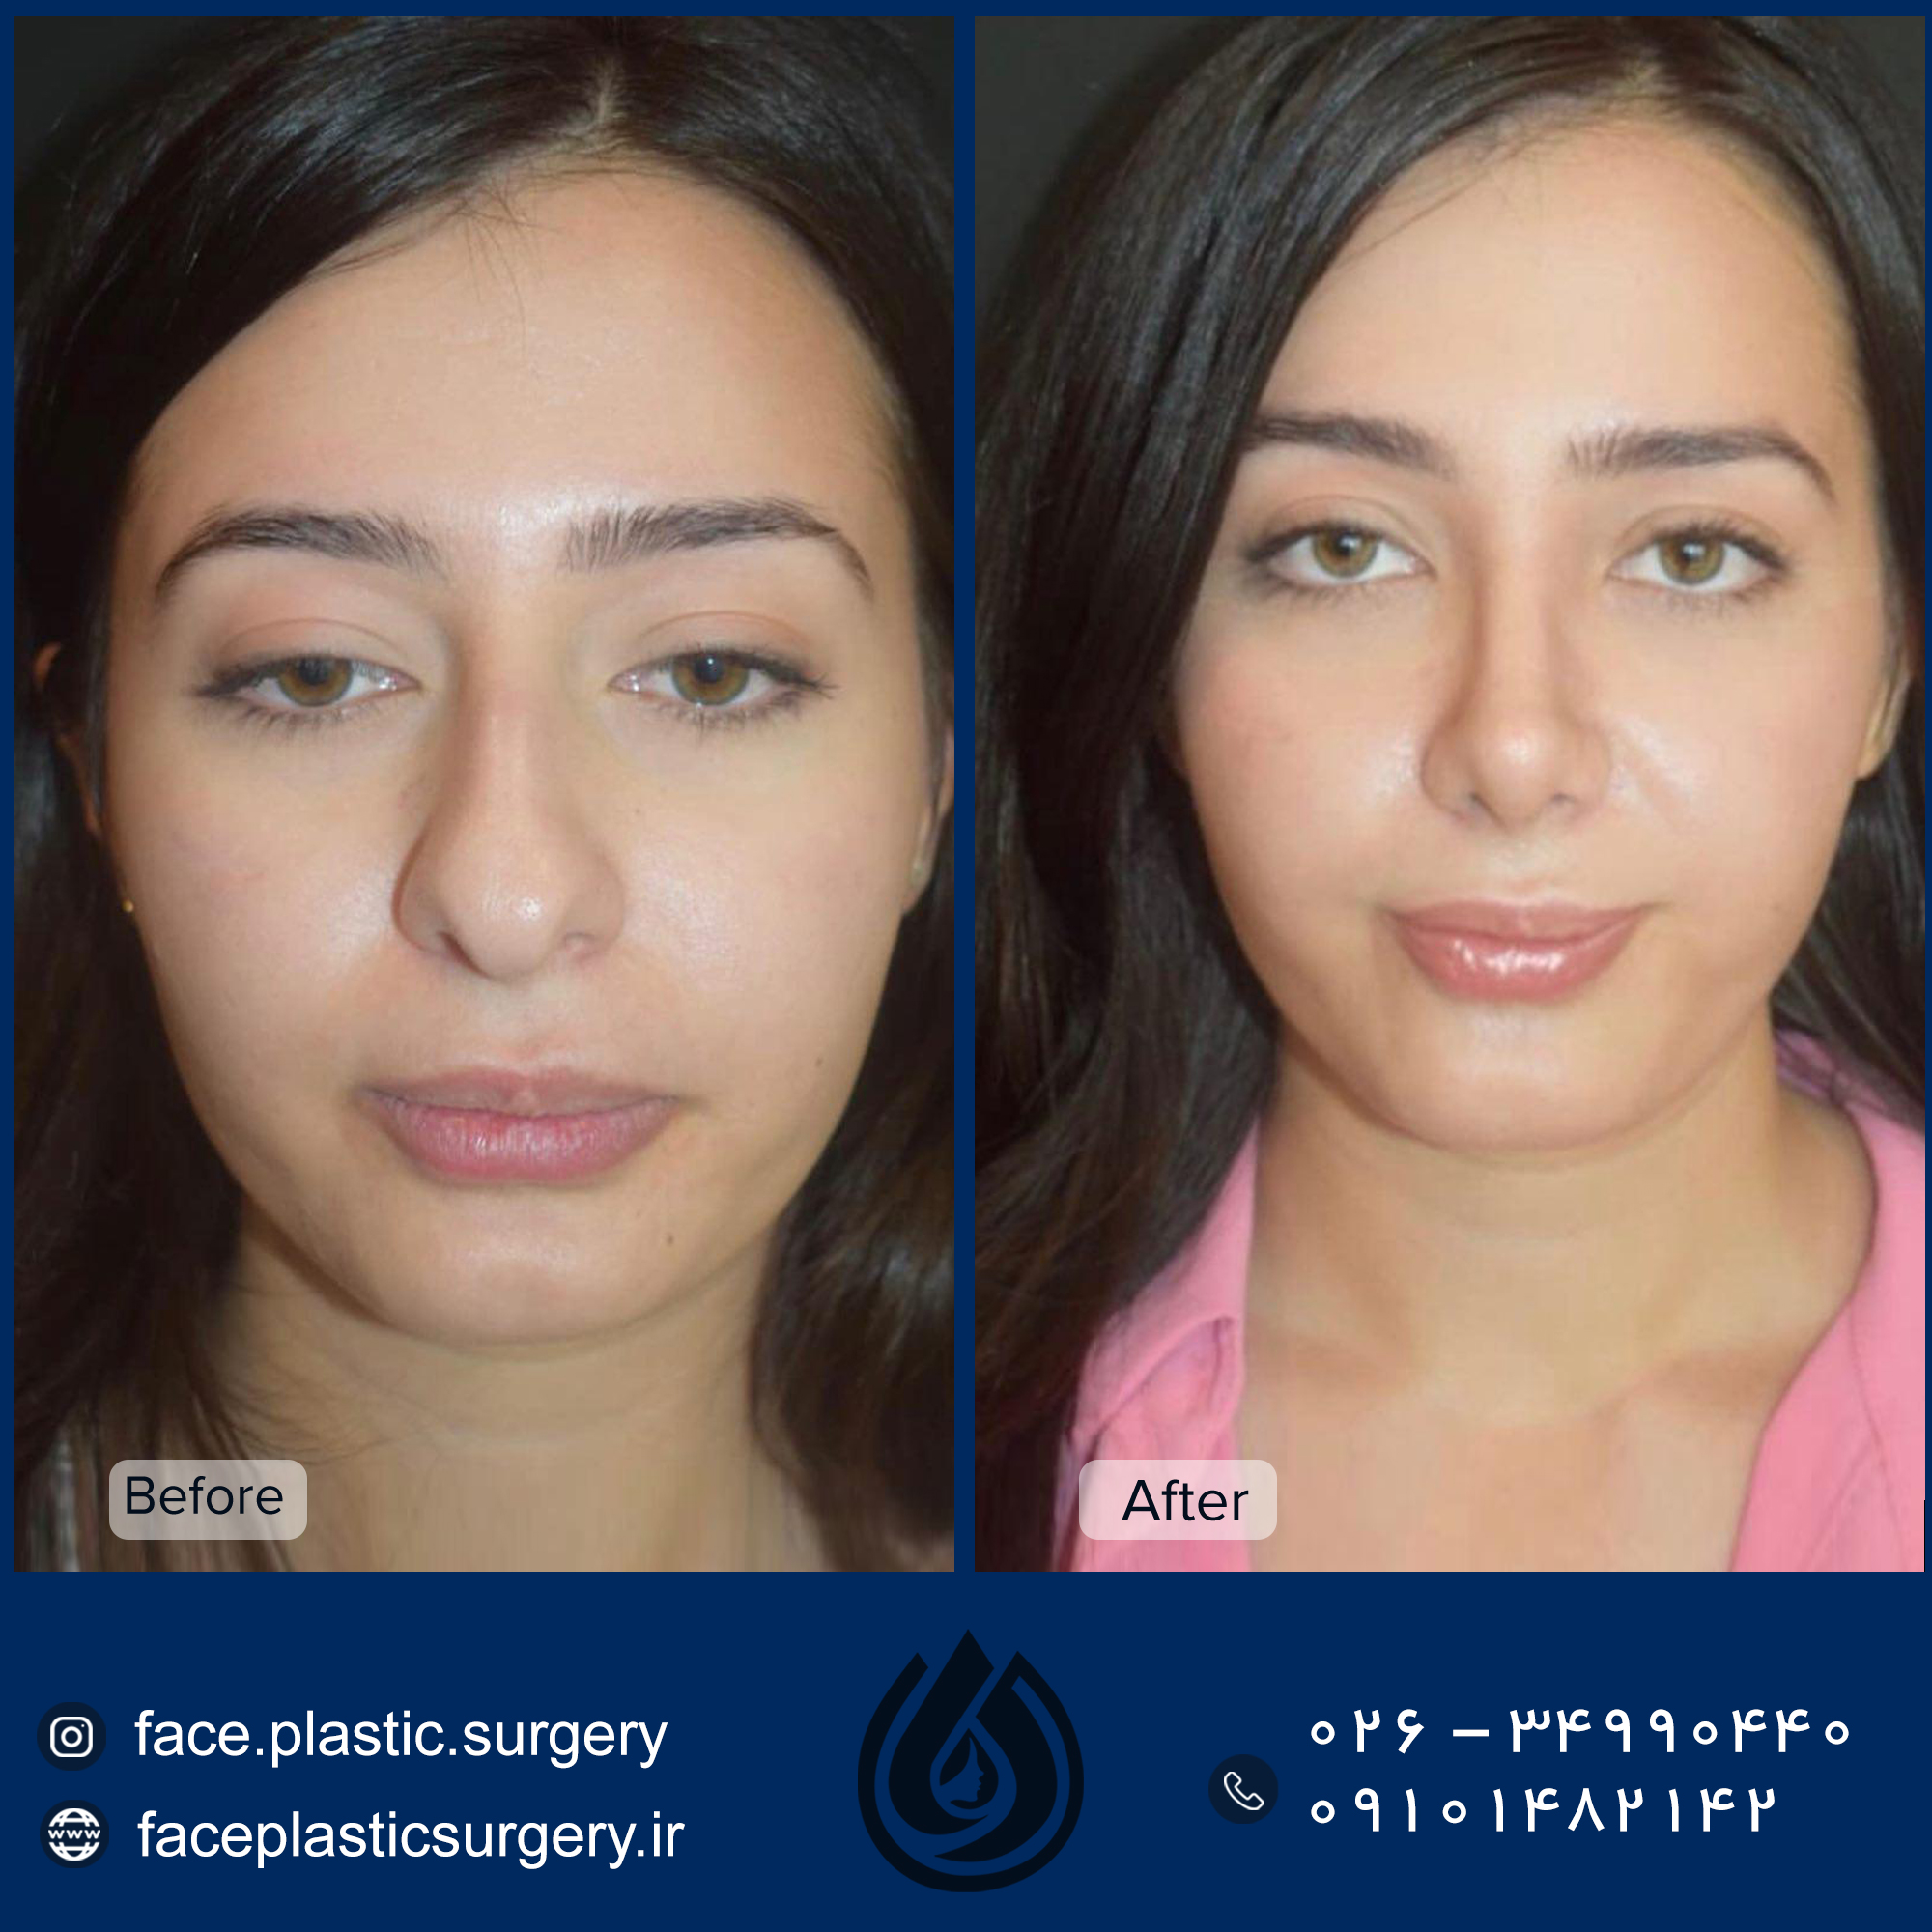 dr-norozi-before-after.jpg11